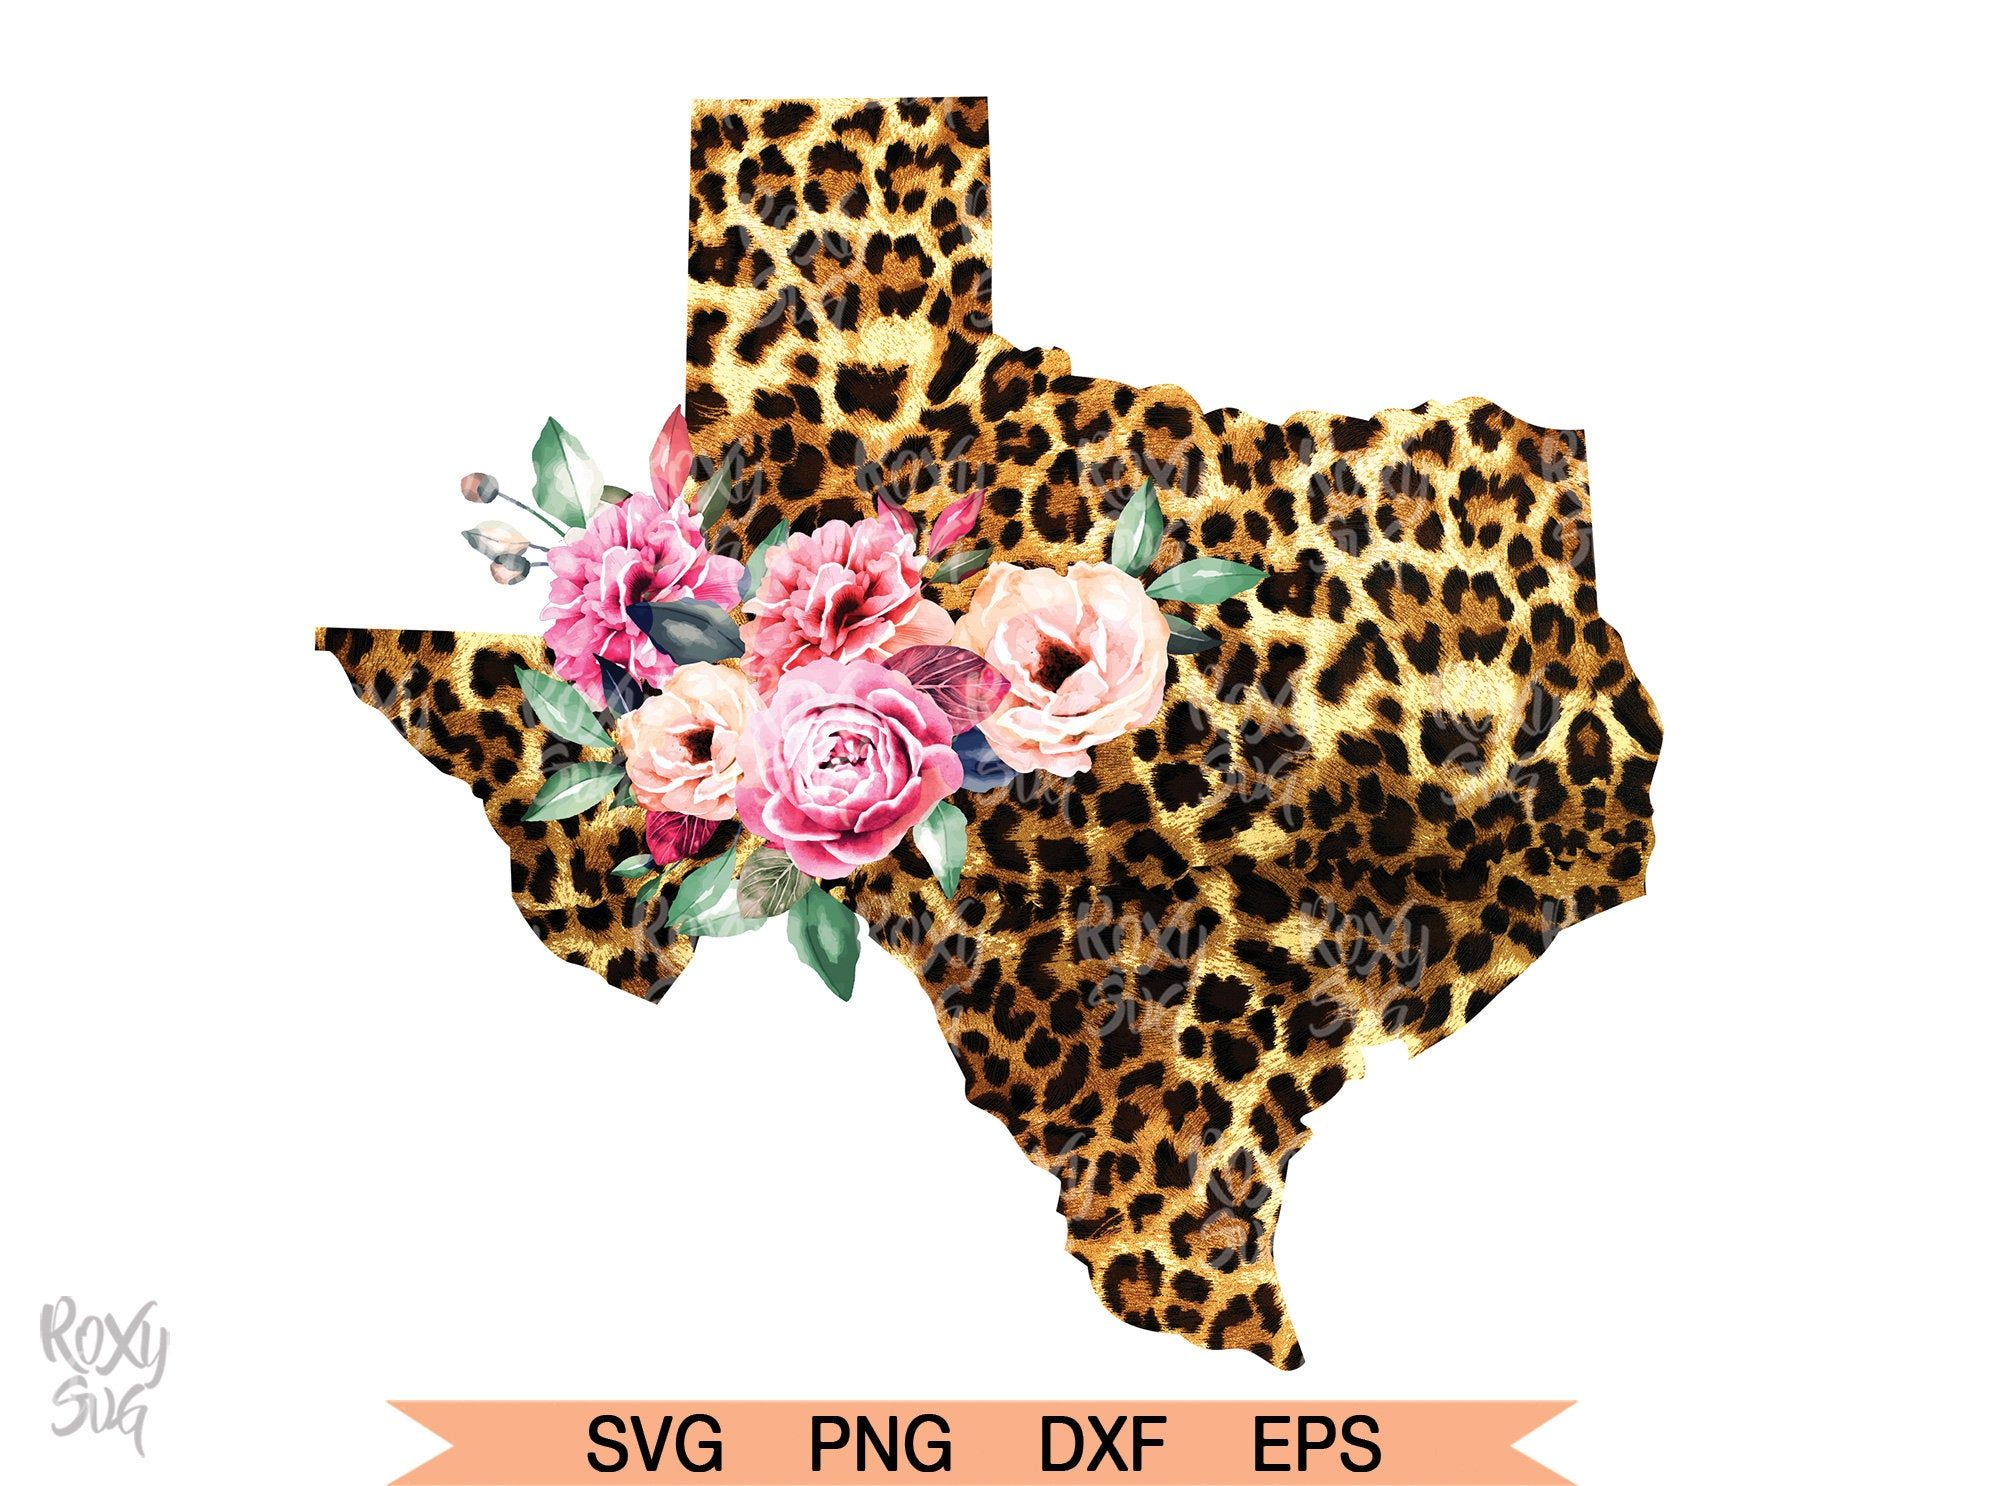 Cheetah And Floral Texas Clipart Sublimation Designs Etsy Clip Art Star Wars Font Artwork